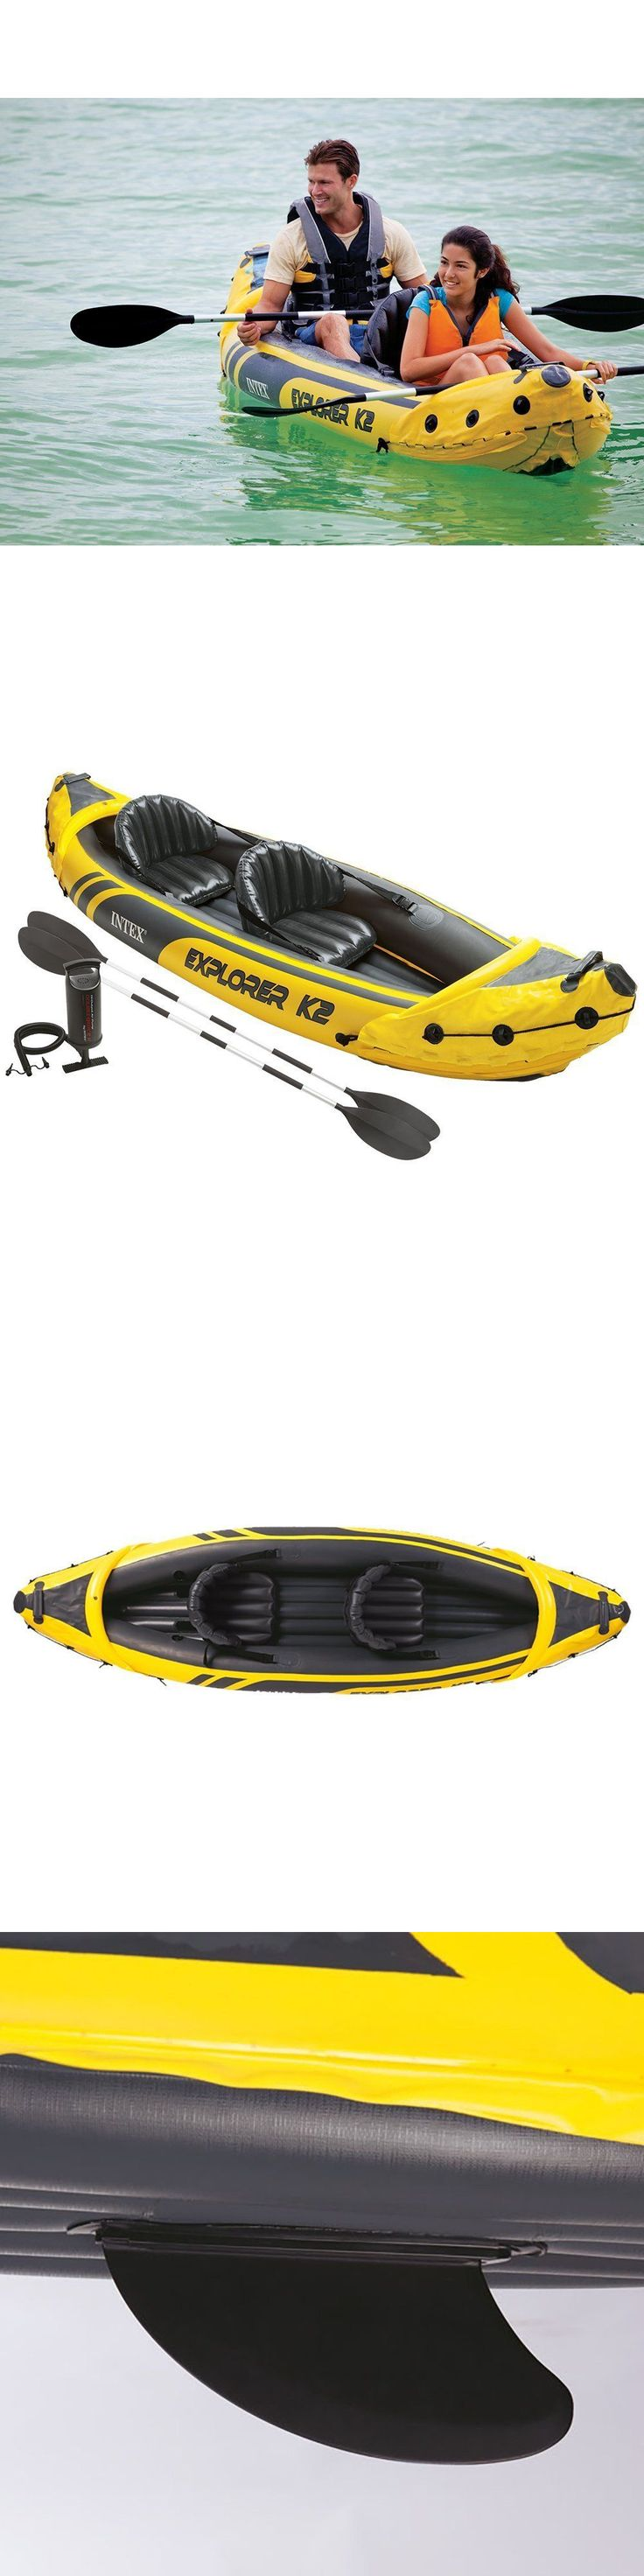 Inflatables 87090: Inflatable Fishing Kayak Boat Raft River Water 2 Person Oars Canoe Lake Air Pump -> BUY IT NOW ONLY: $132.95 on eBay!